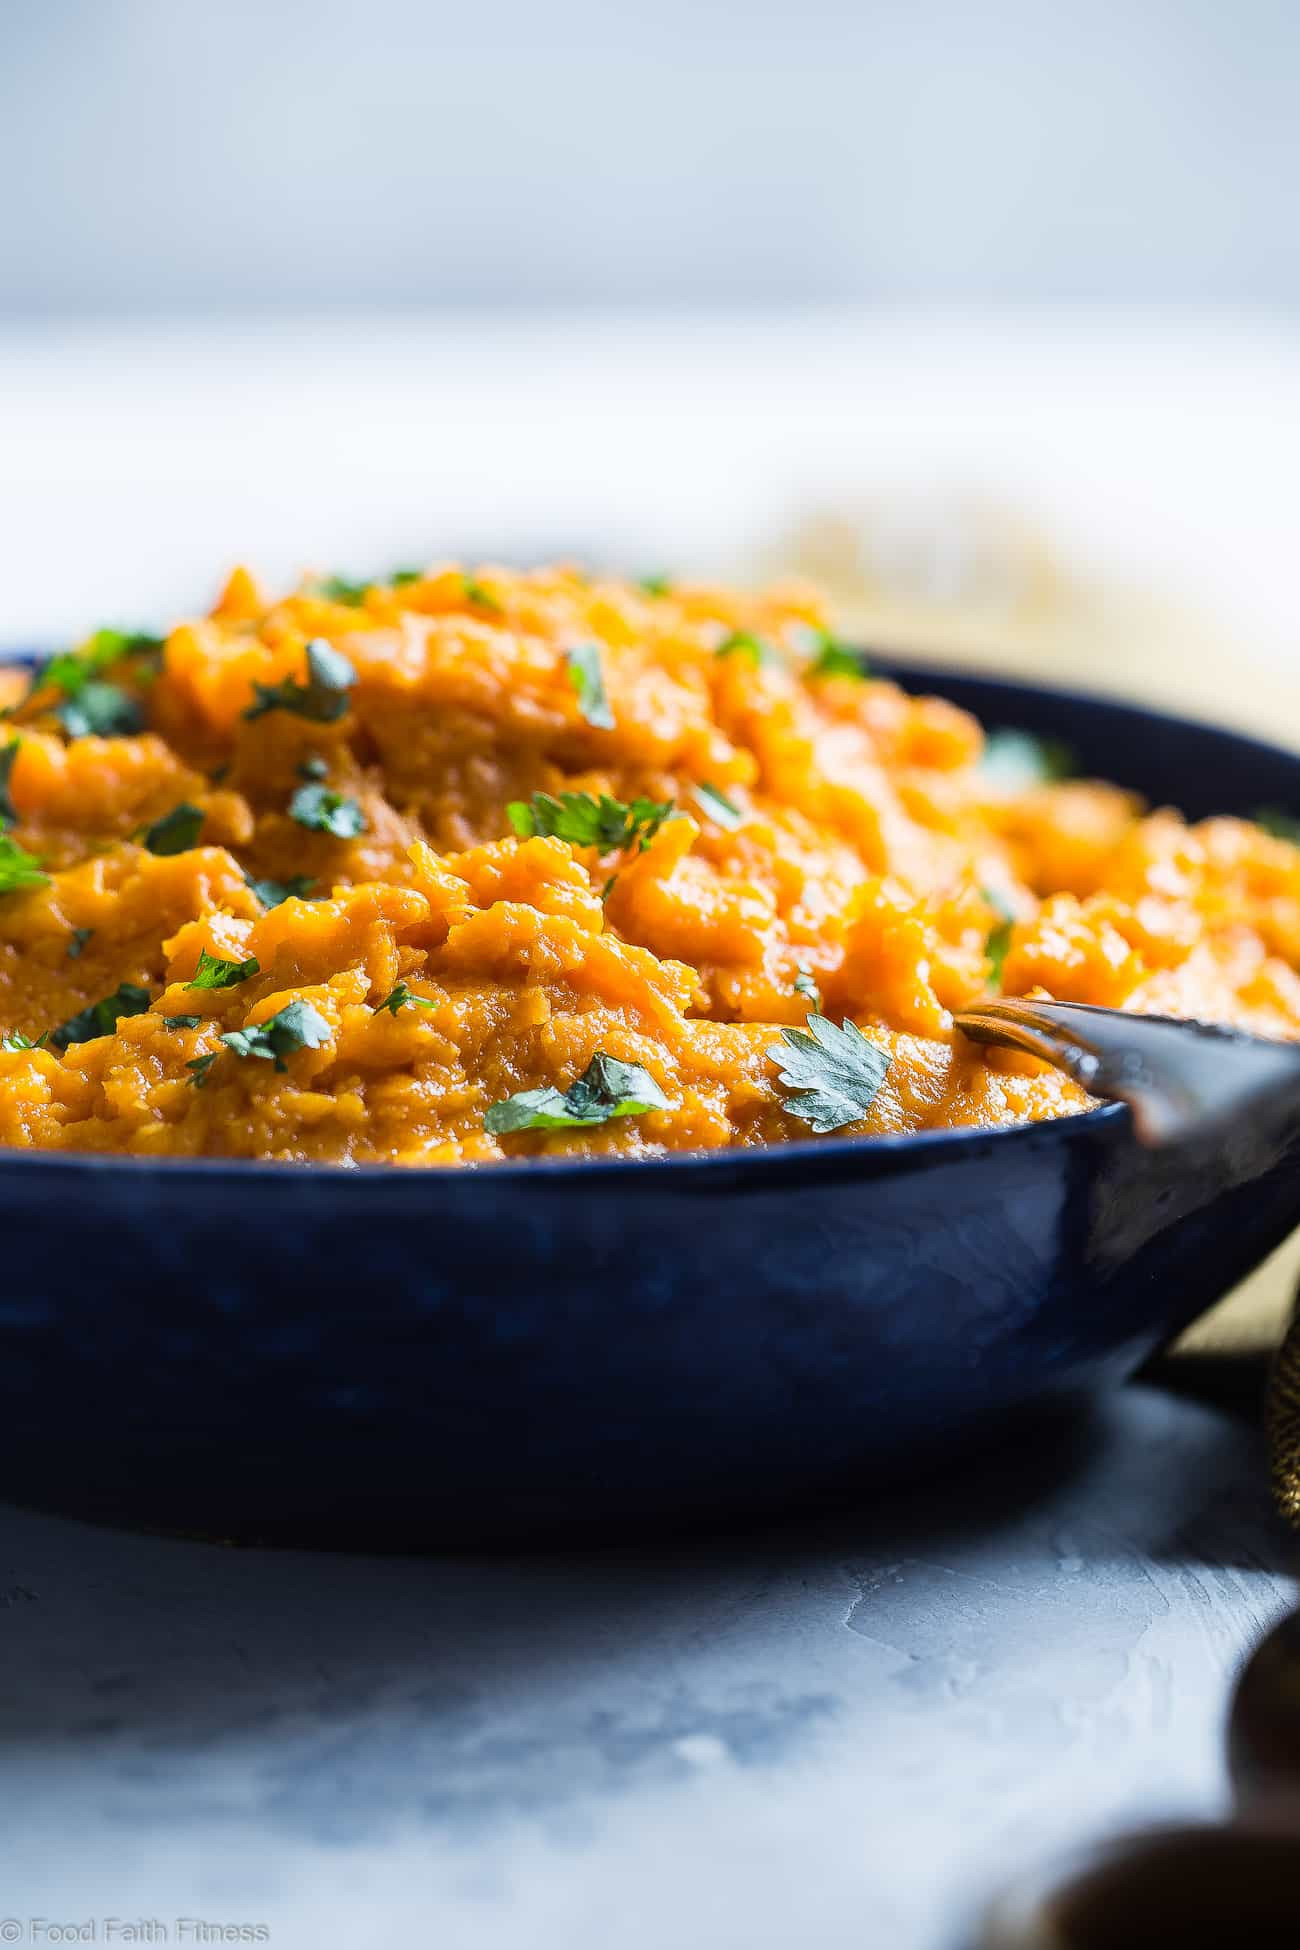 Mashed Sweet Potatoes Healthy  Curried Savory Vegan Healthy Mashed Sweet Potatoes